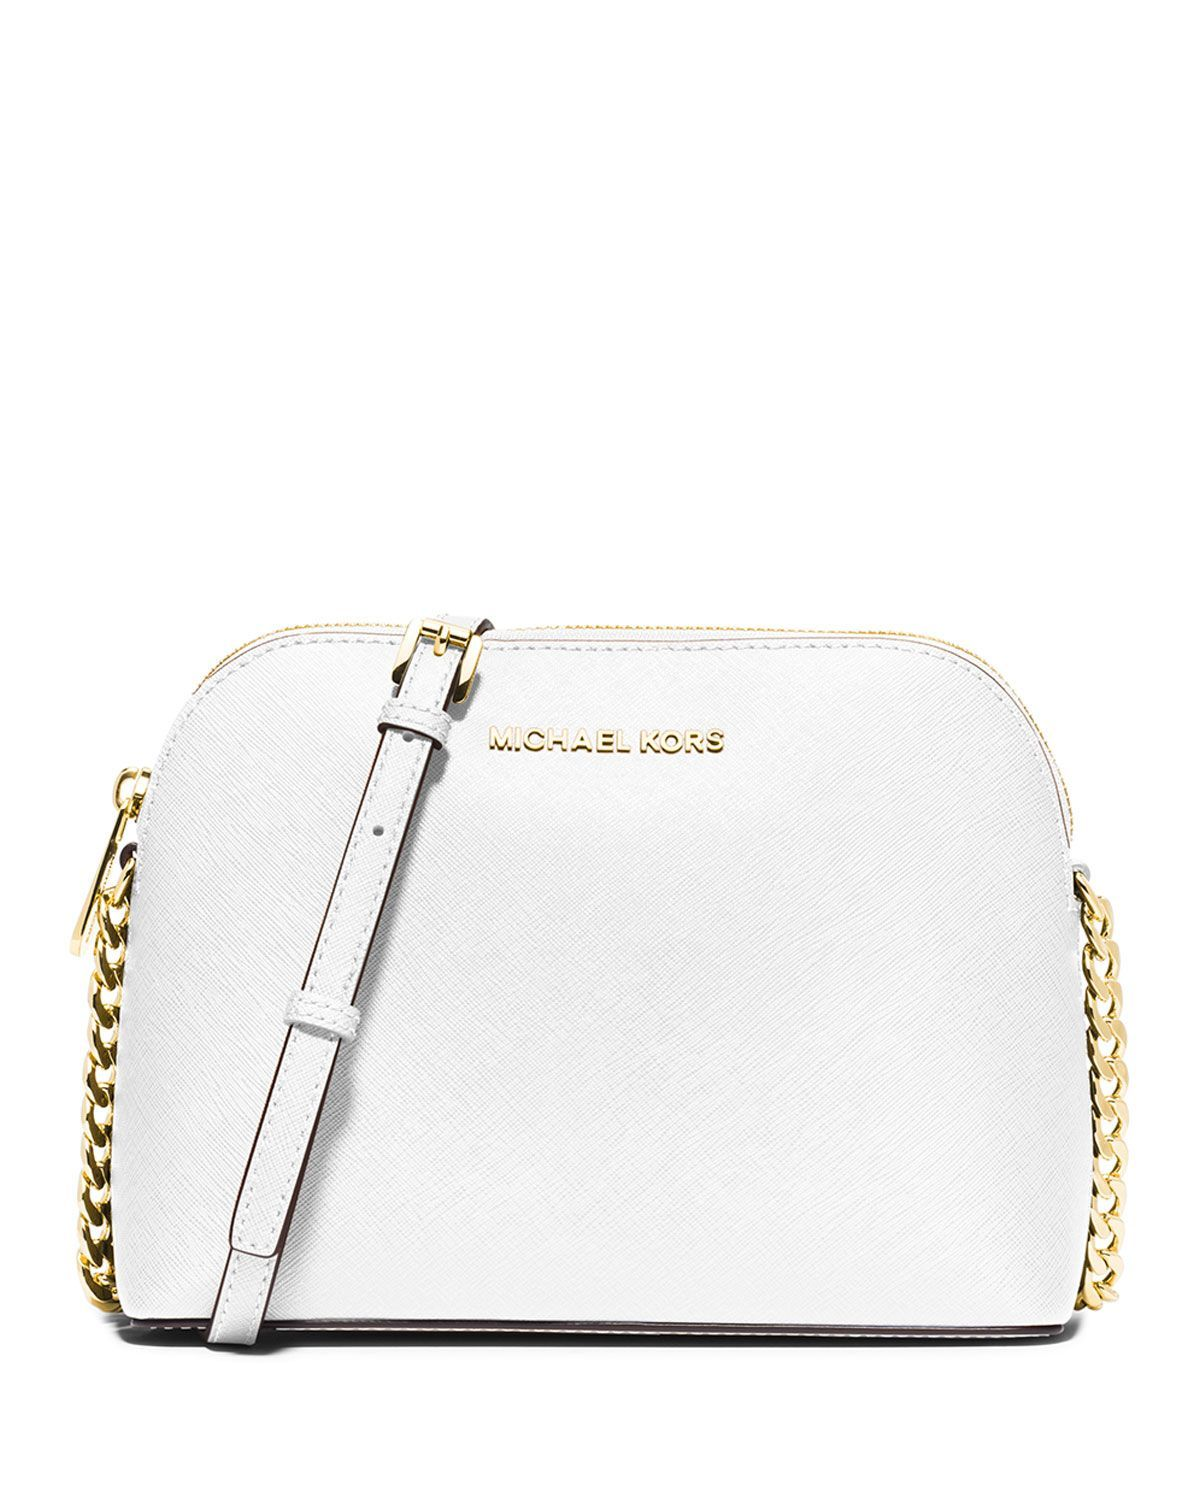 0950883a7efa MICHAEL Michael Kors Cindy Large Dome Crossbody Bag, Optic White ...